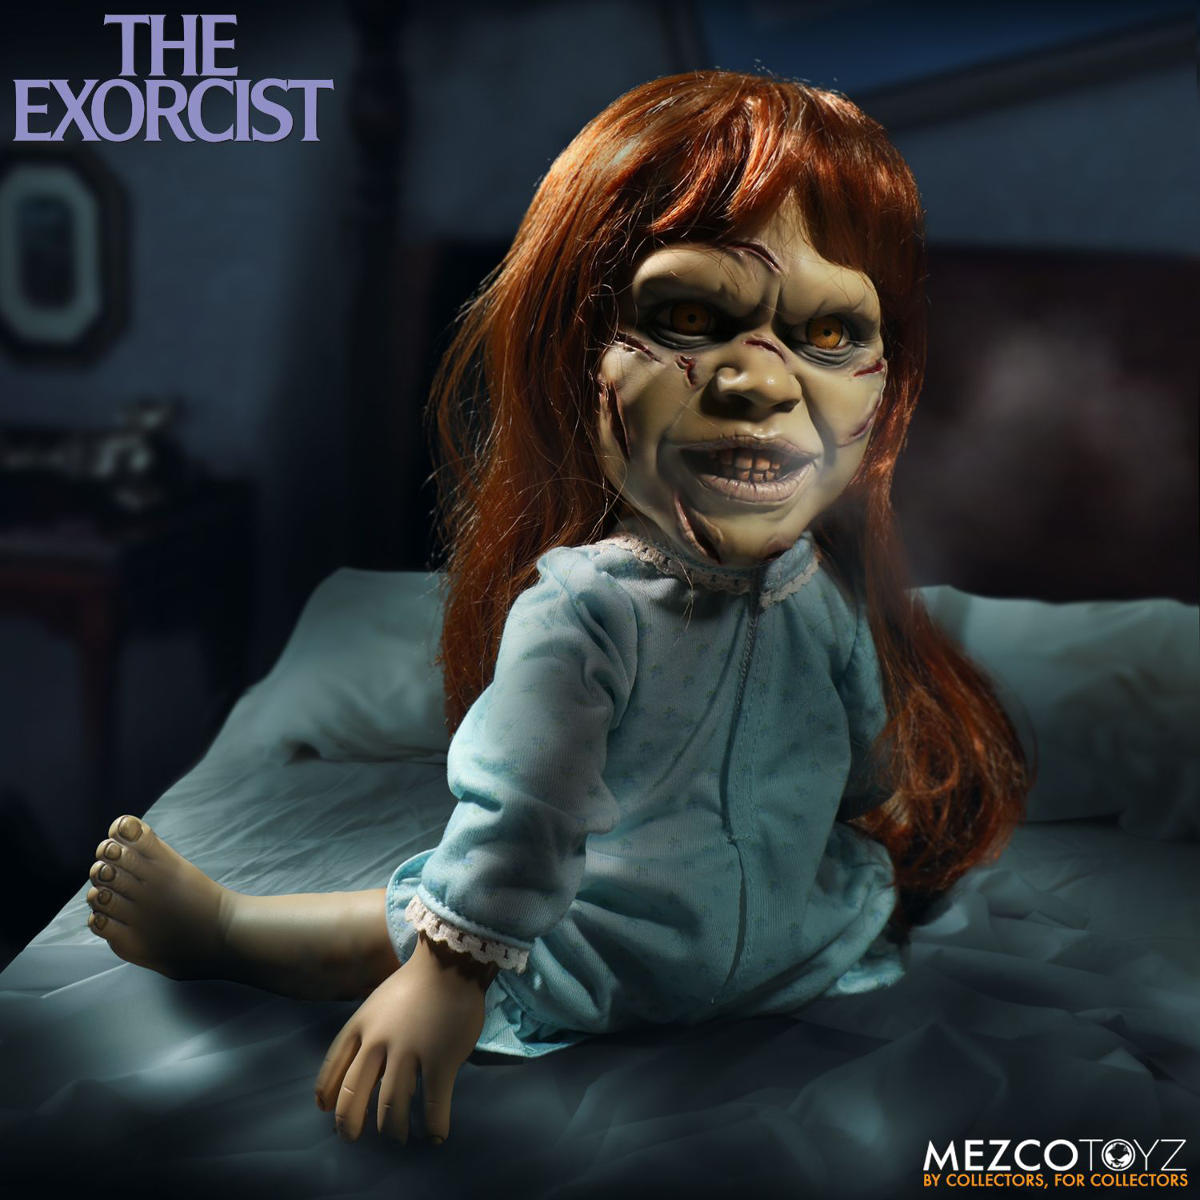 Mezco Toyz The Exorcist 2